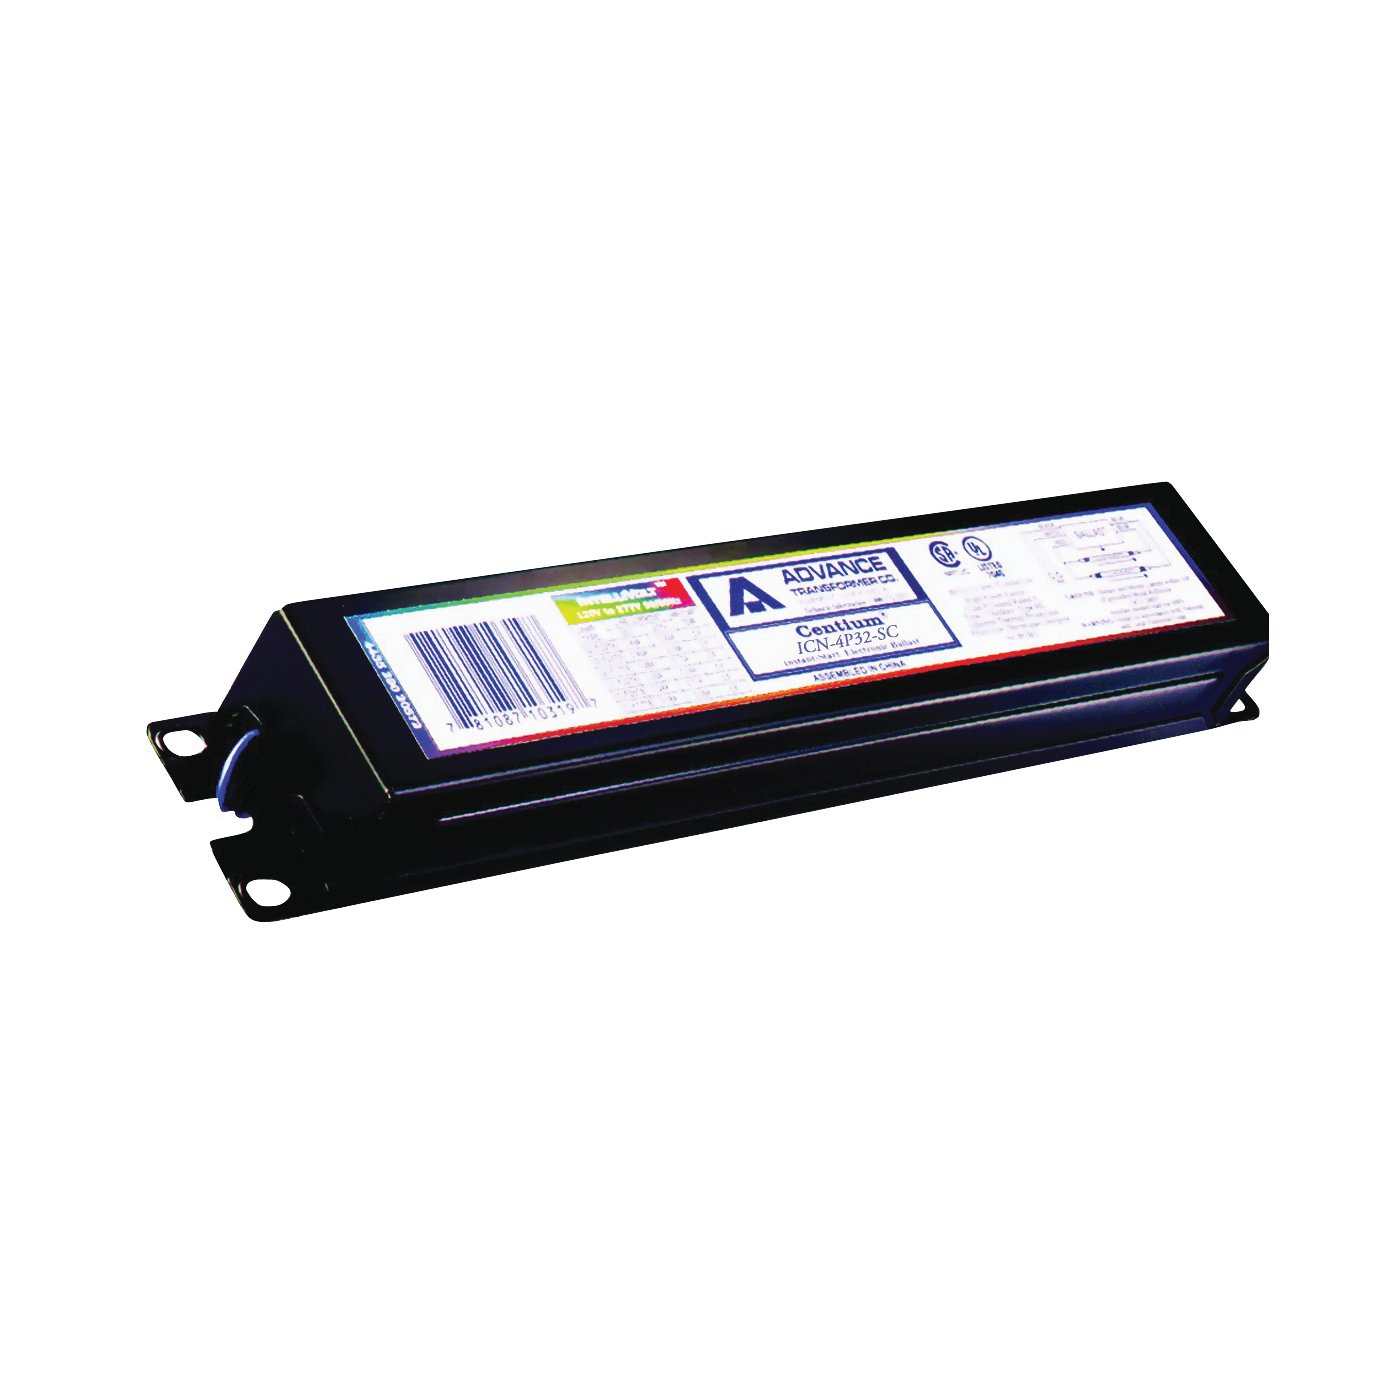 Picture of Philips Advance Centium ICN4P32N35I Electronic Ballast, 120/277 V, 111 W, 4-Lamp